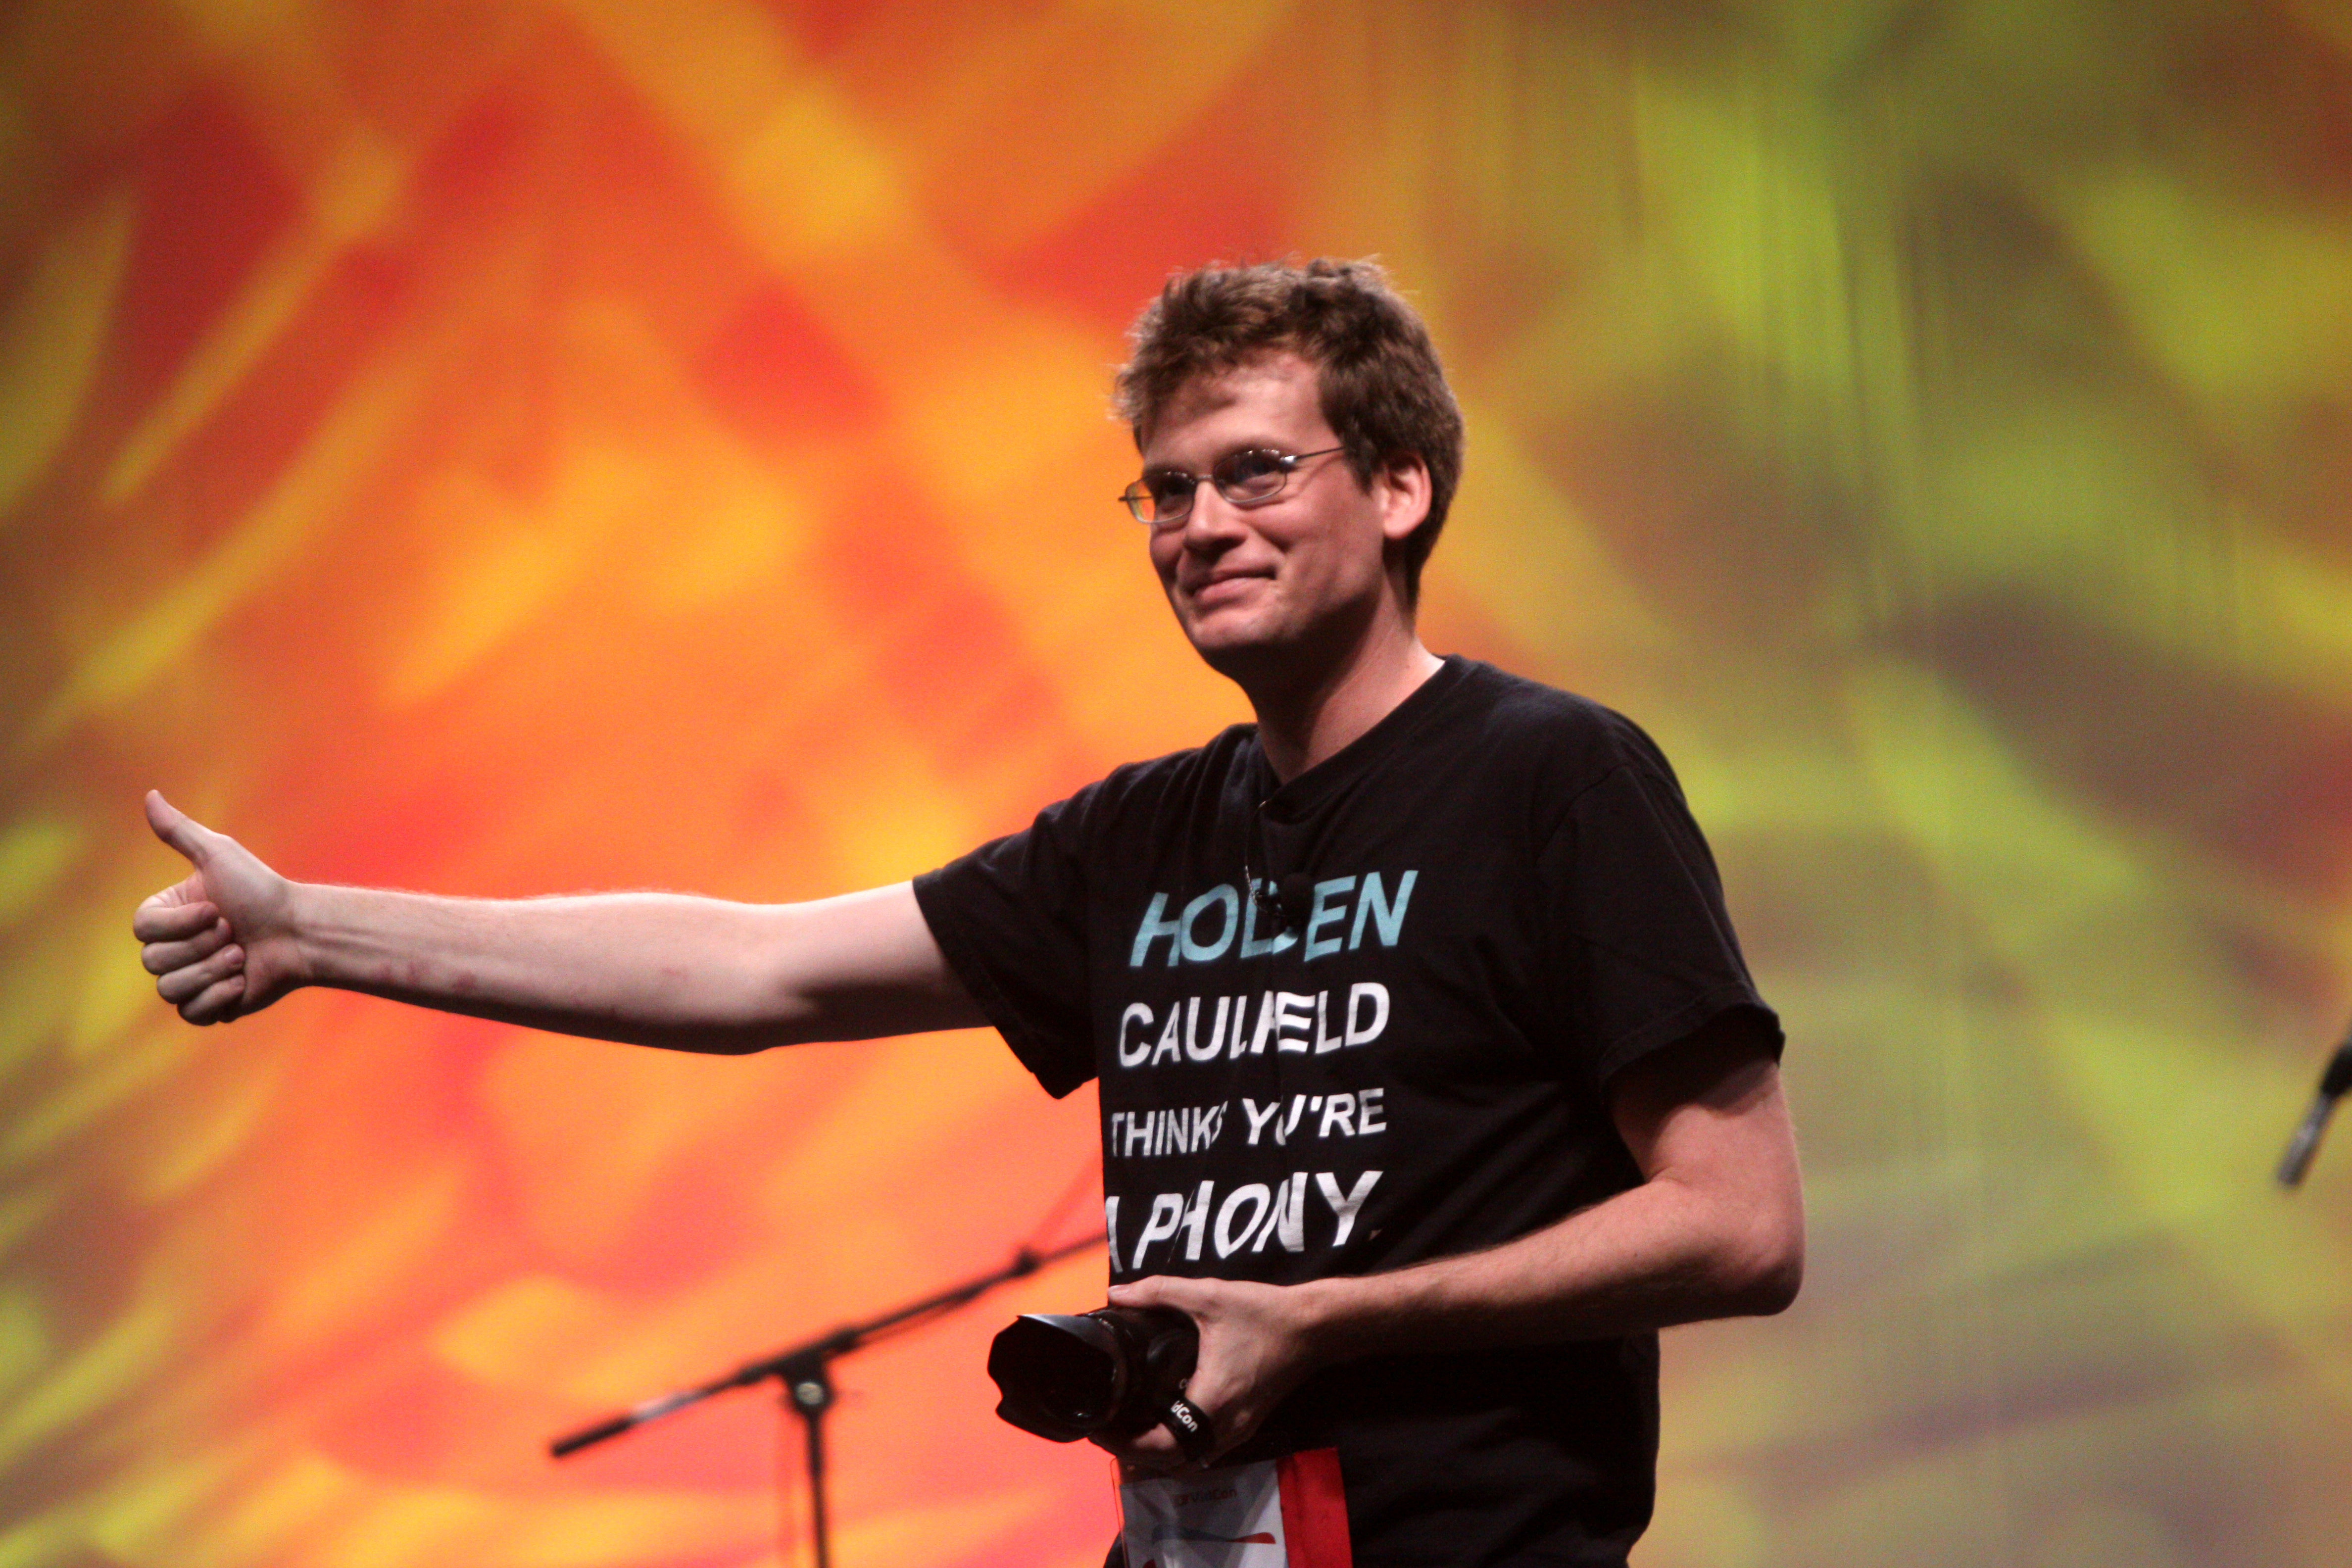 mongol crash course Hi, i'm john green this is crash course: world history : and today we're going to talk about russia, which means we get to talk about this guy again.